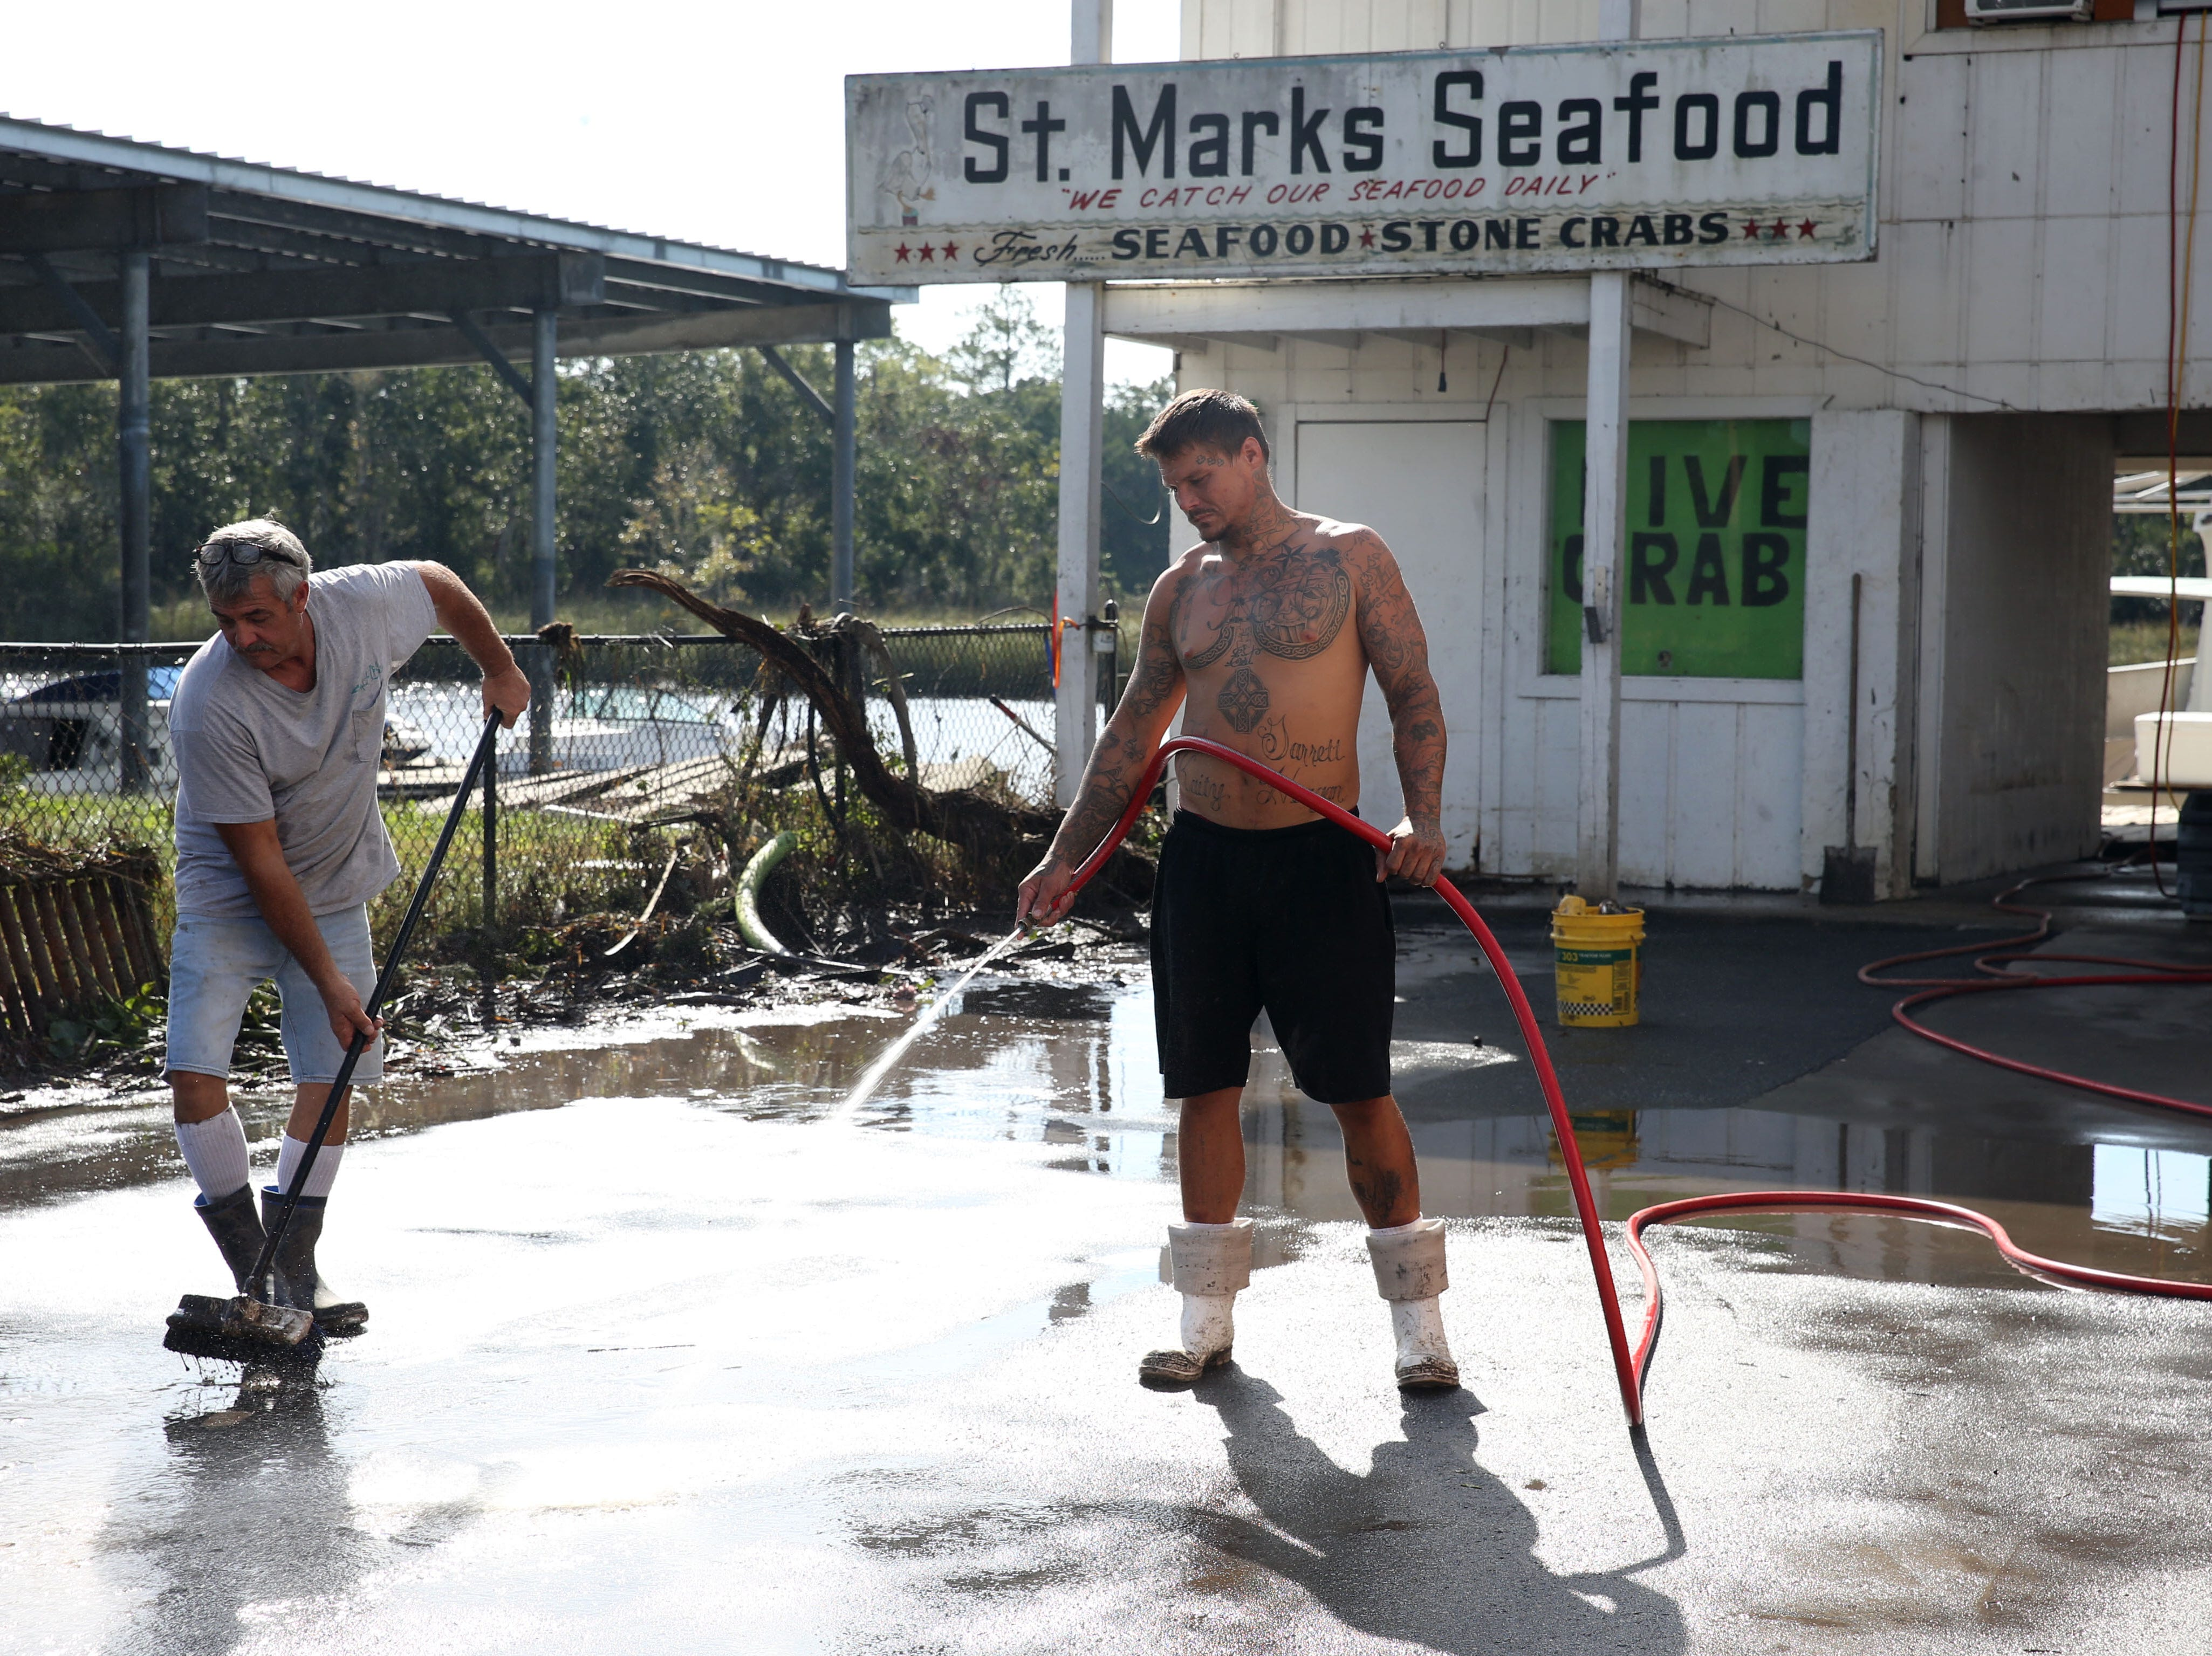 In St. Marks, Fla. on Thursday, Oct. 11, 2018 St. Marks Seafood employees work to remove the river sludge that blankets the ground after Hurricane Michael tears through the panhandle.